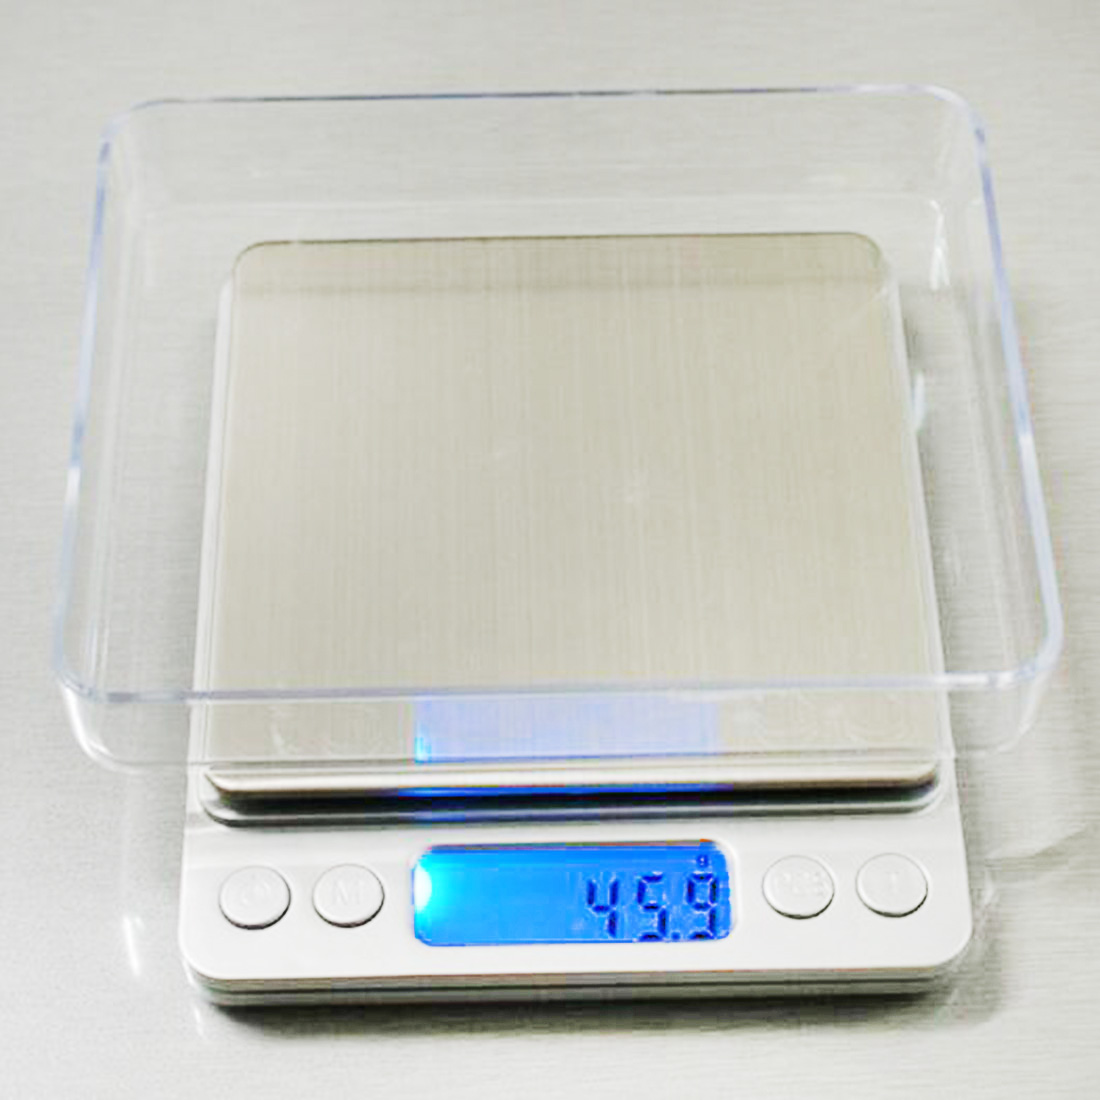 Mini Accurate Household Kitchen Scales 1pc 500g x 0.01g Digital Electronic Kitchen Food Diet Pocket Scales Jewelry Weight scale